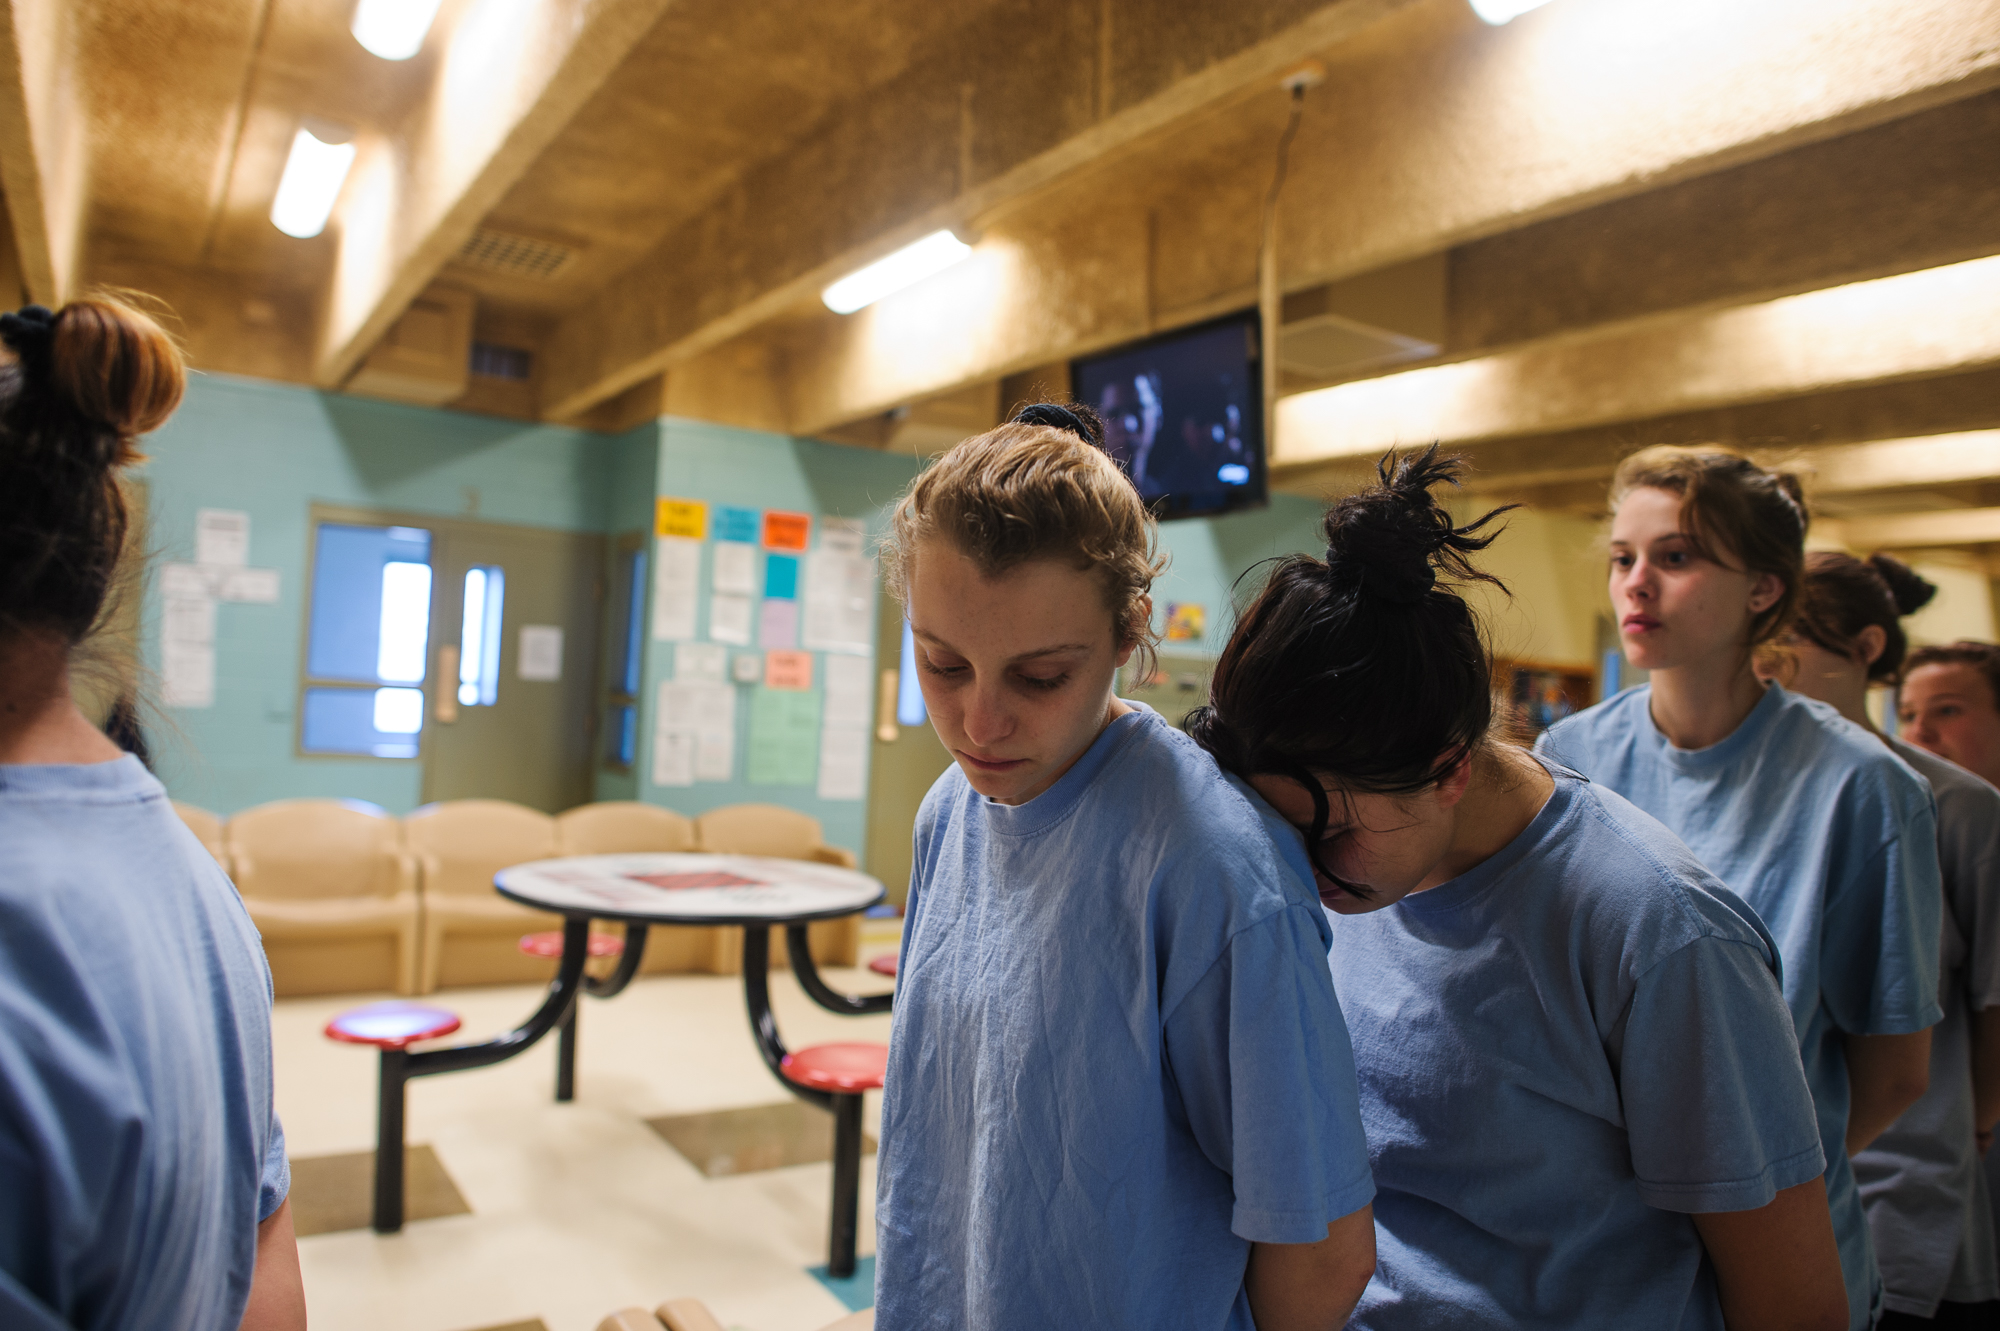 Alysia, age 16, stands in command call, or a line, to exit the girls' unit, while Jasmine, age 15, leans and cries into Alysia's back.